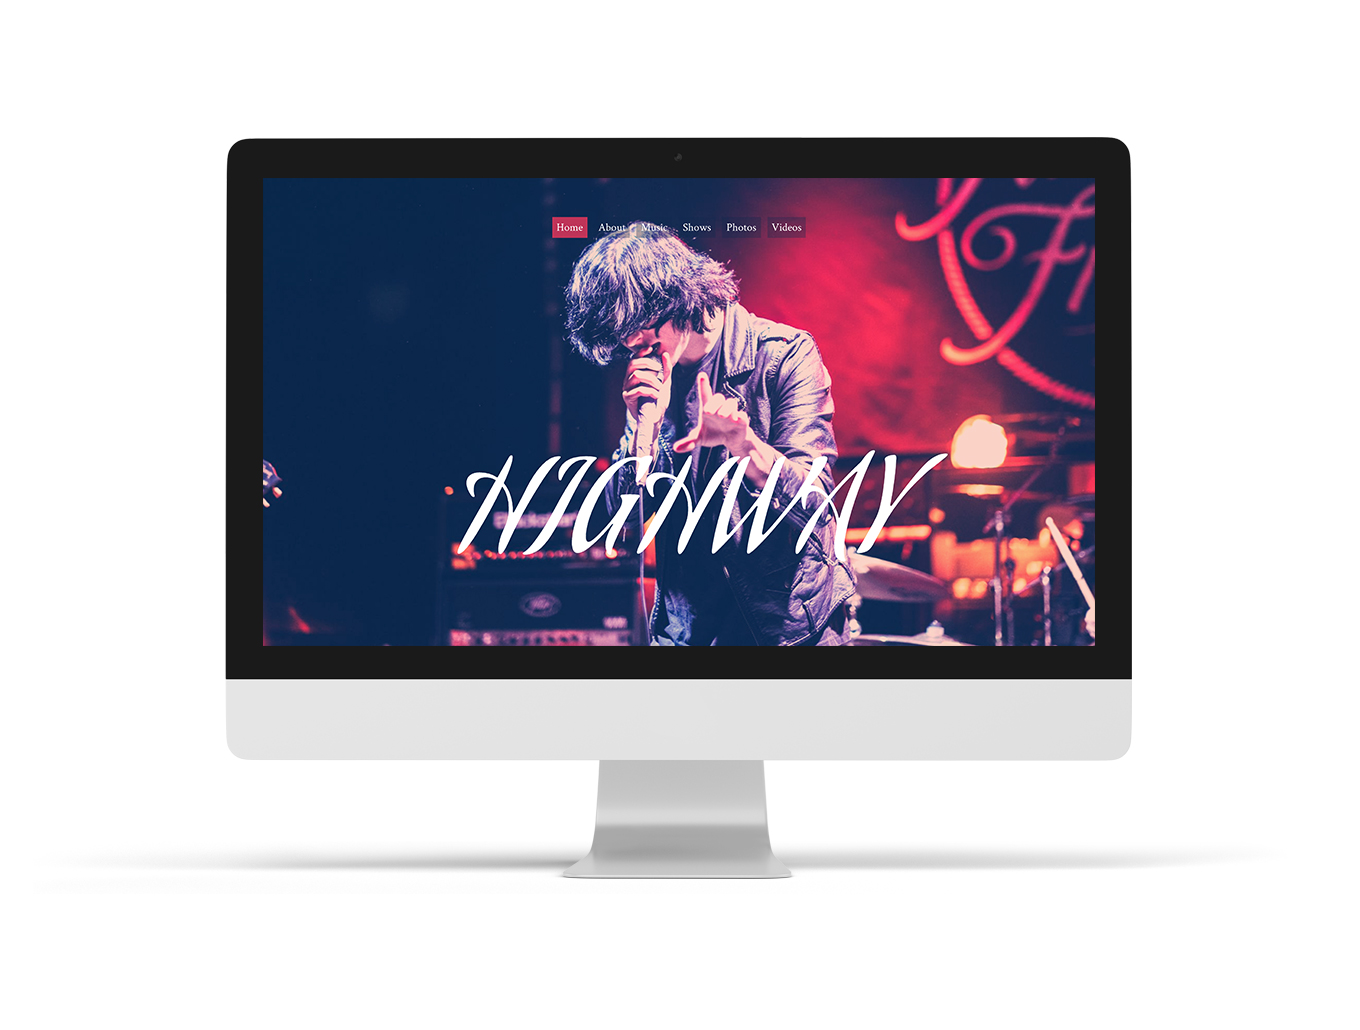 Surround musician website theme variant - Bandzoogle